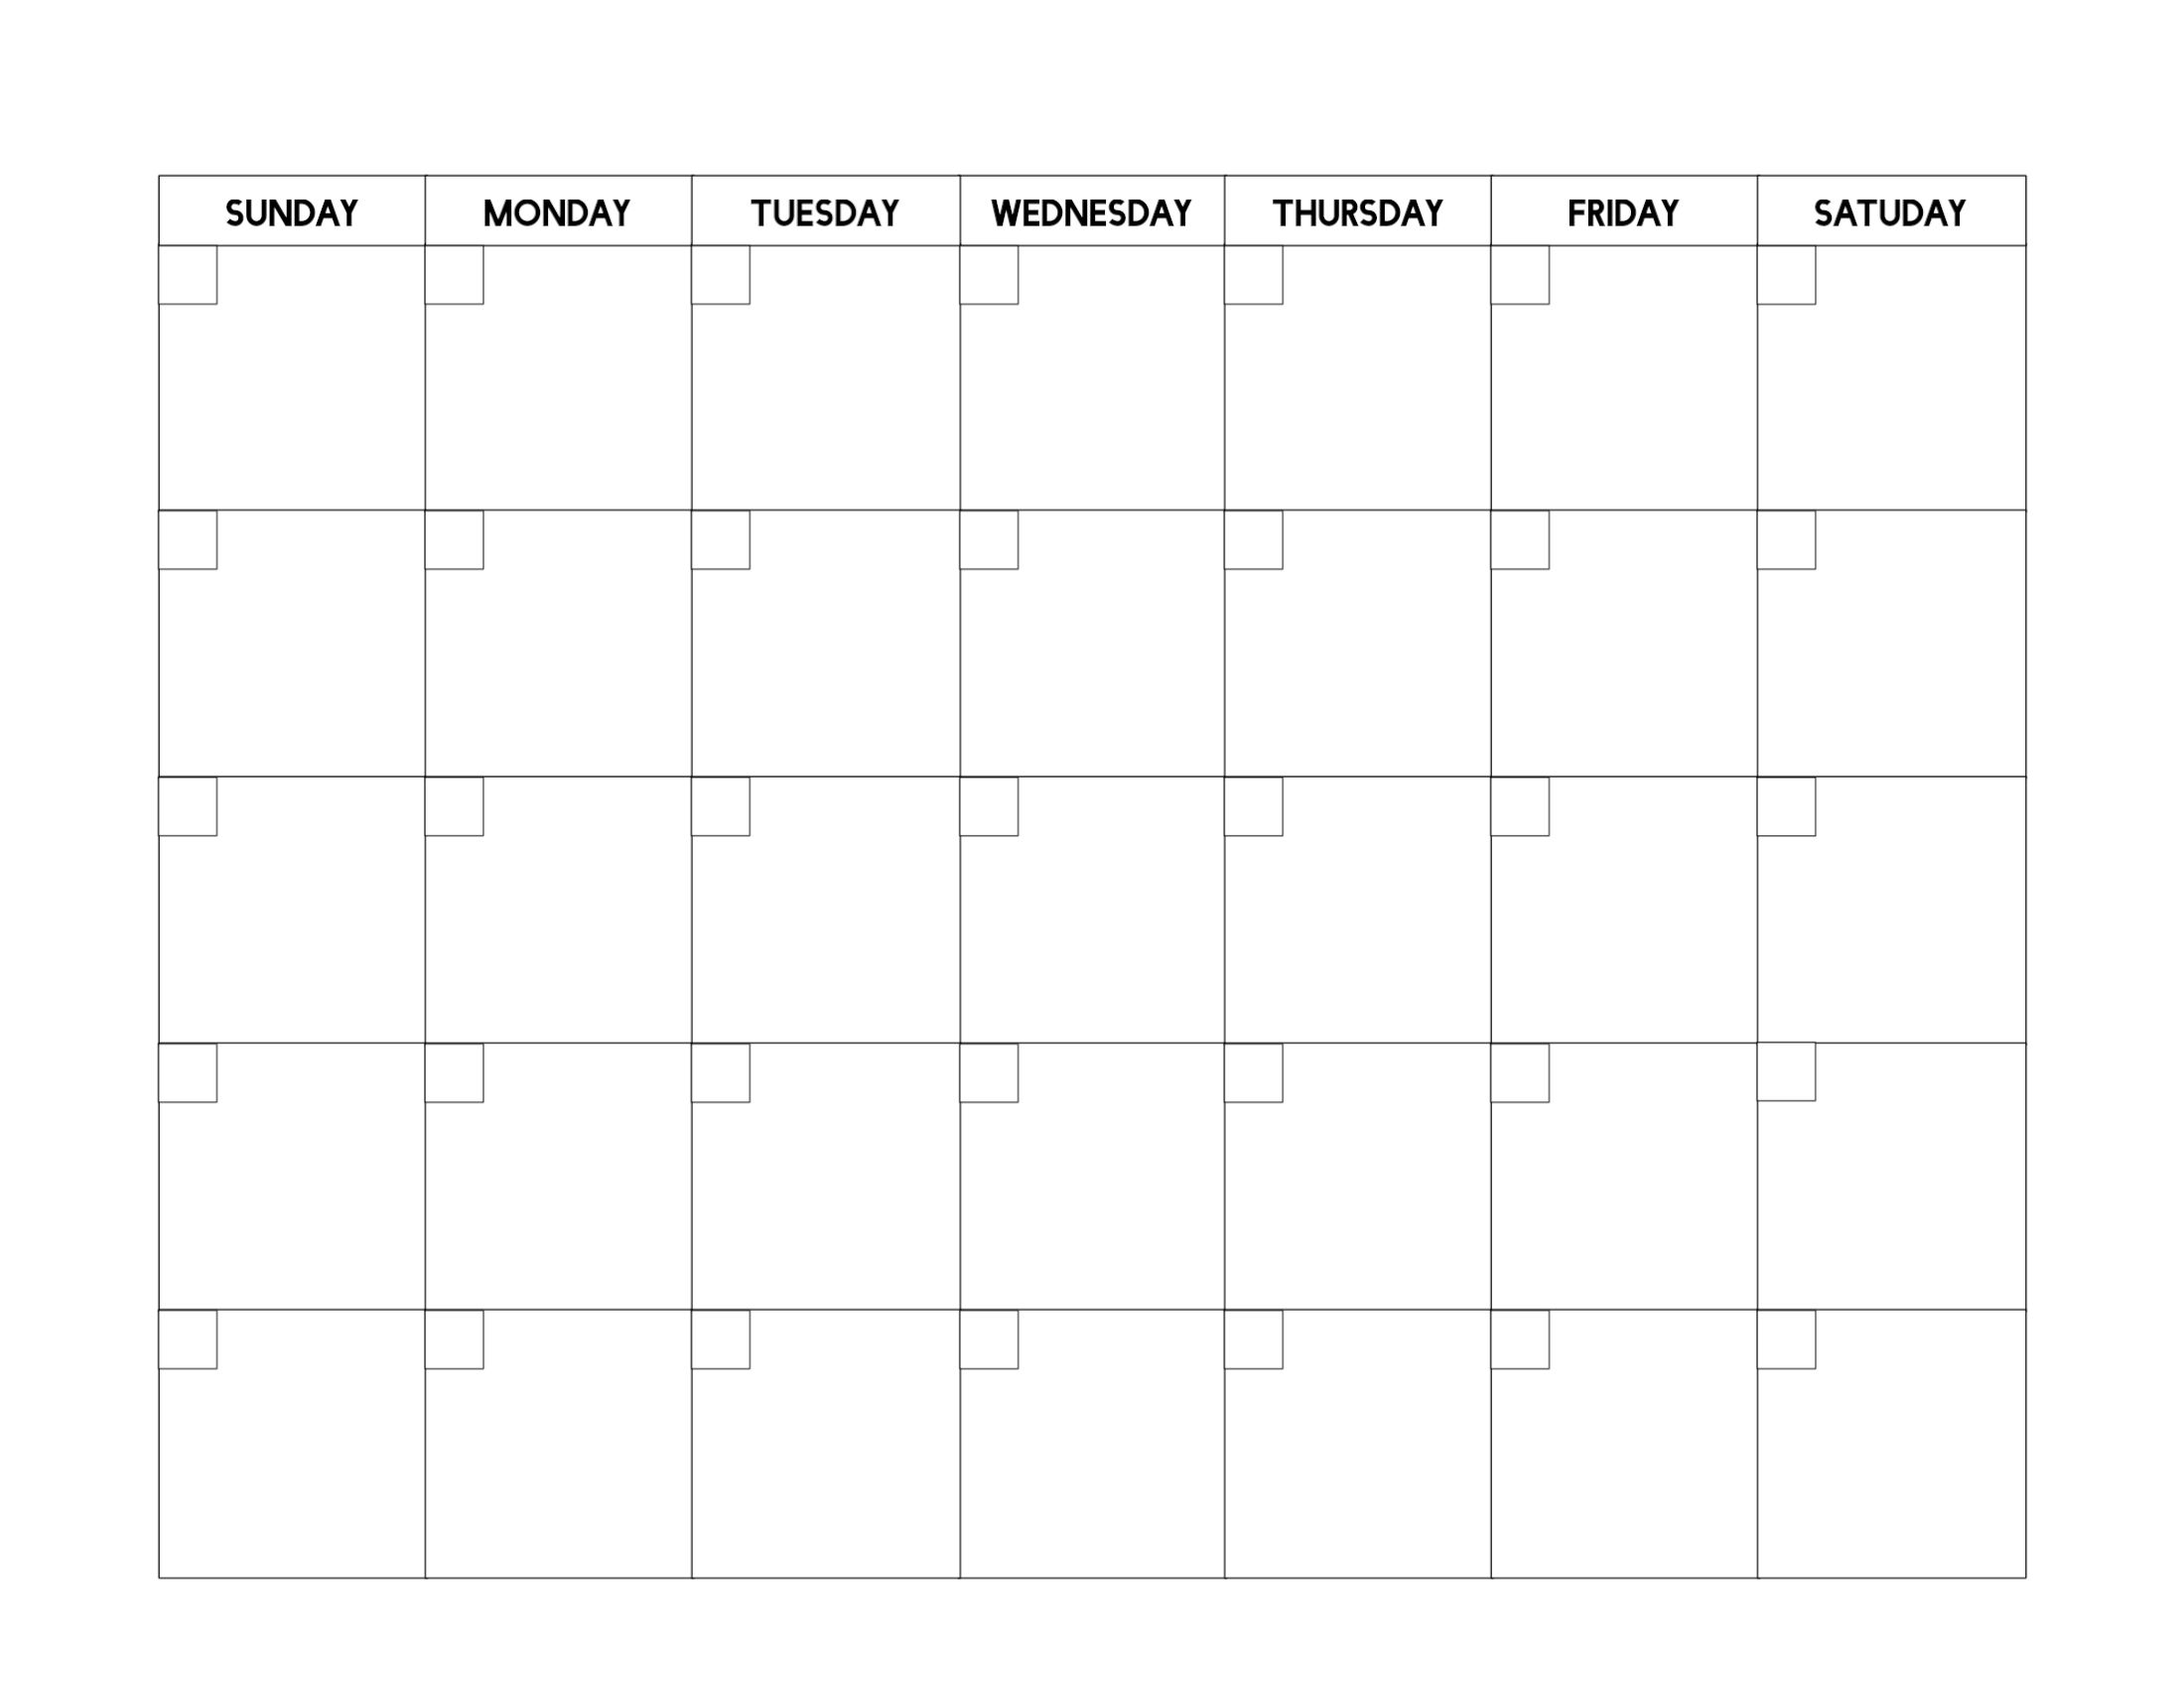 Free Printable Calendar Sheets In 2020 | Blank Calendar for 2021 Fill-In Calendar